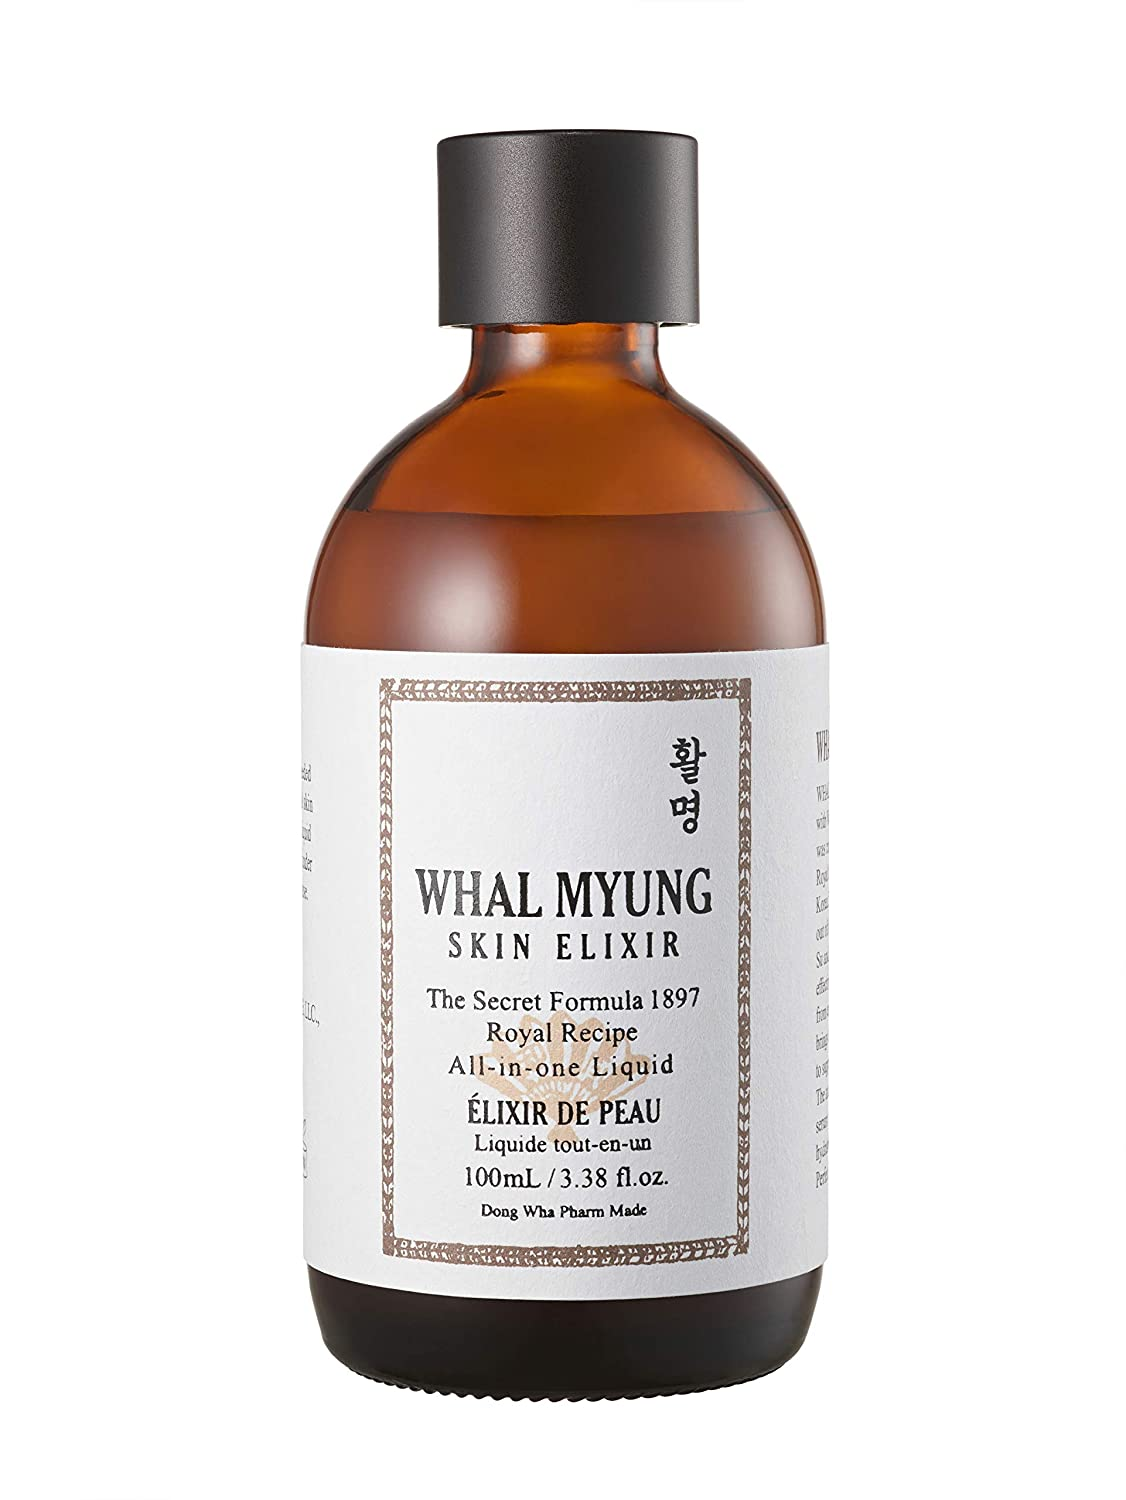 Whal Myung Skin Elixir, All-in-one Face Liquid, Daily Korean Skin Care Routine Clean Beauty, Moisturizer for All Skin Type (3.38 Fl Oz)